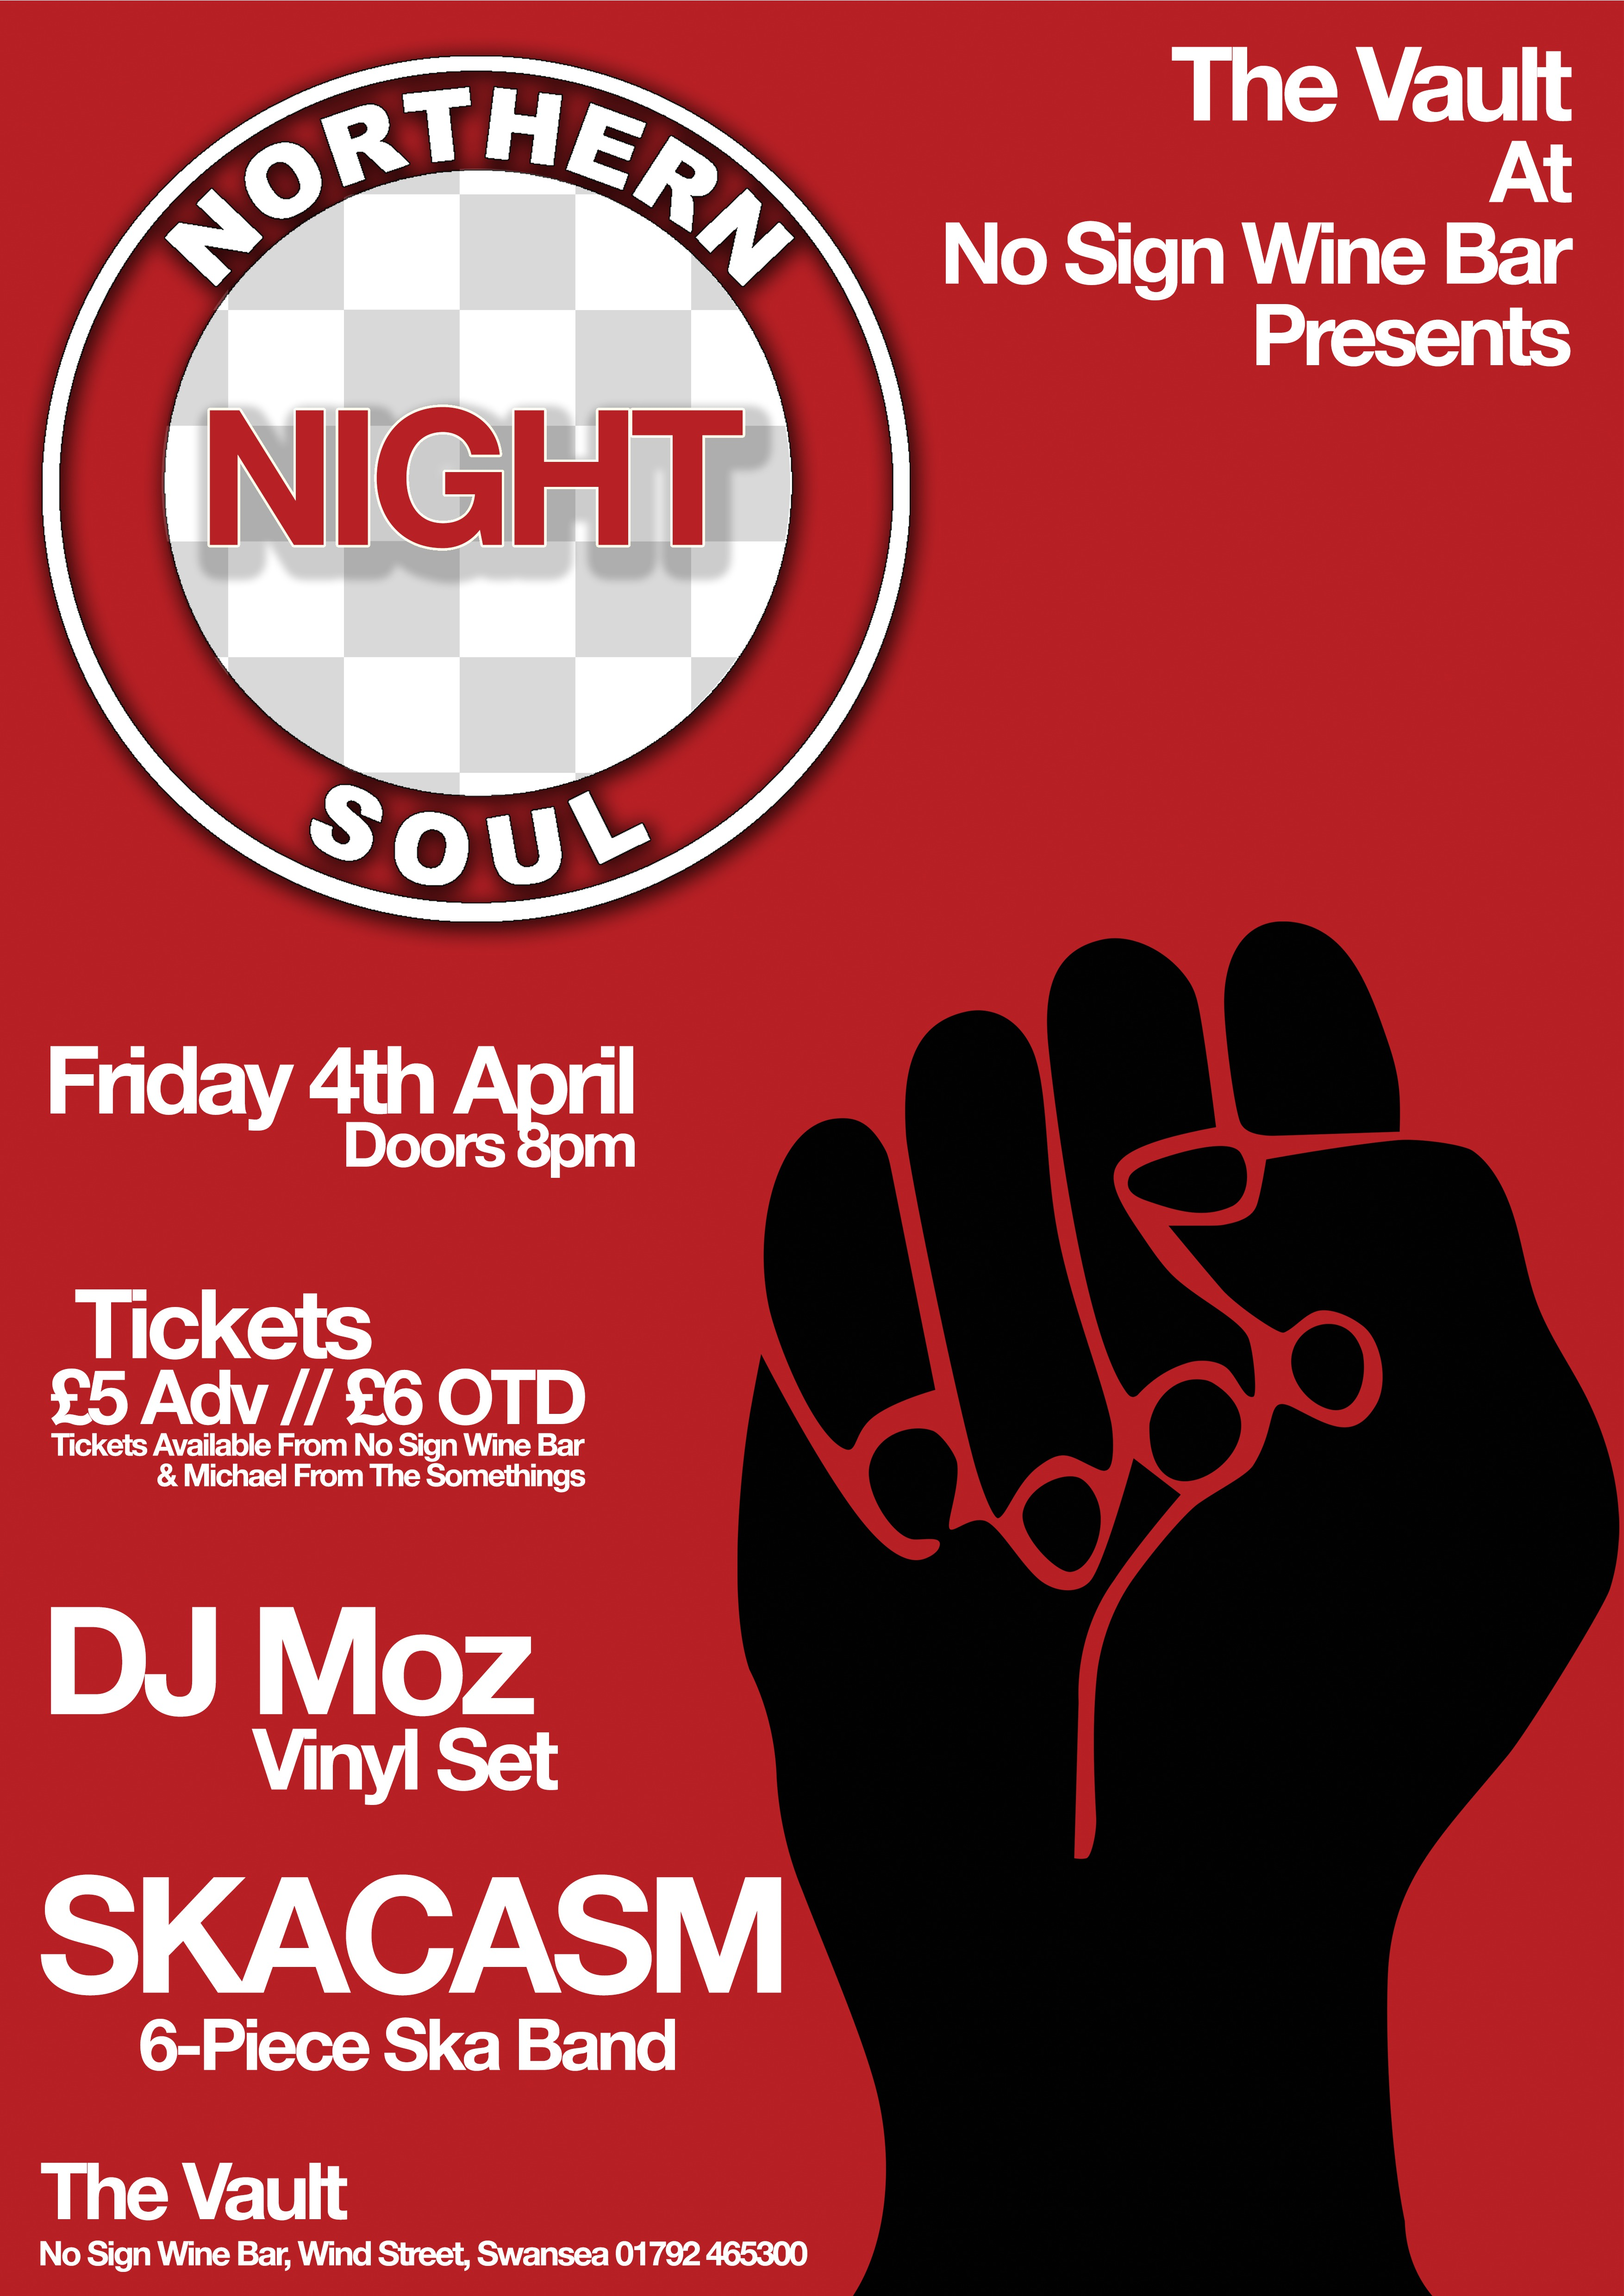 Northern Soul Night   April 4th 2014   The Vault Swansea